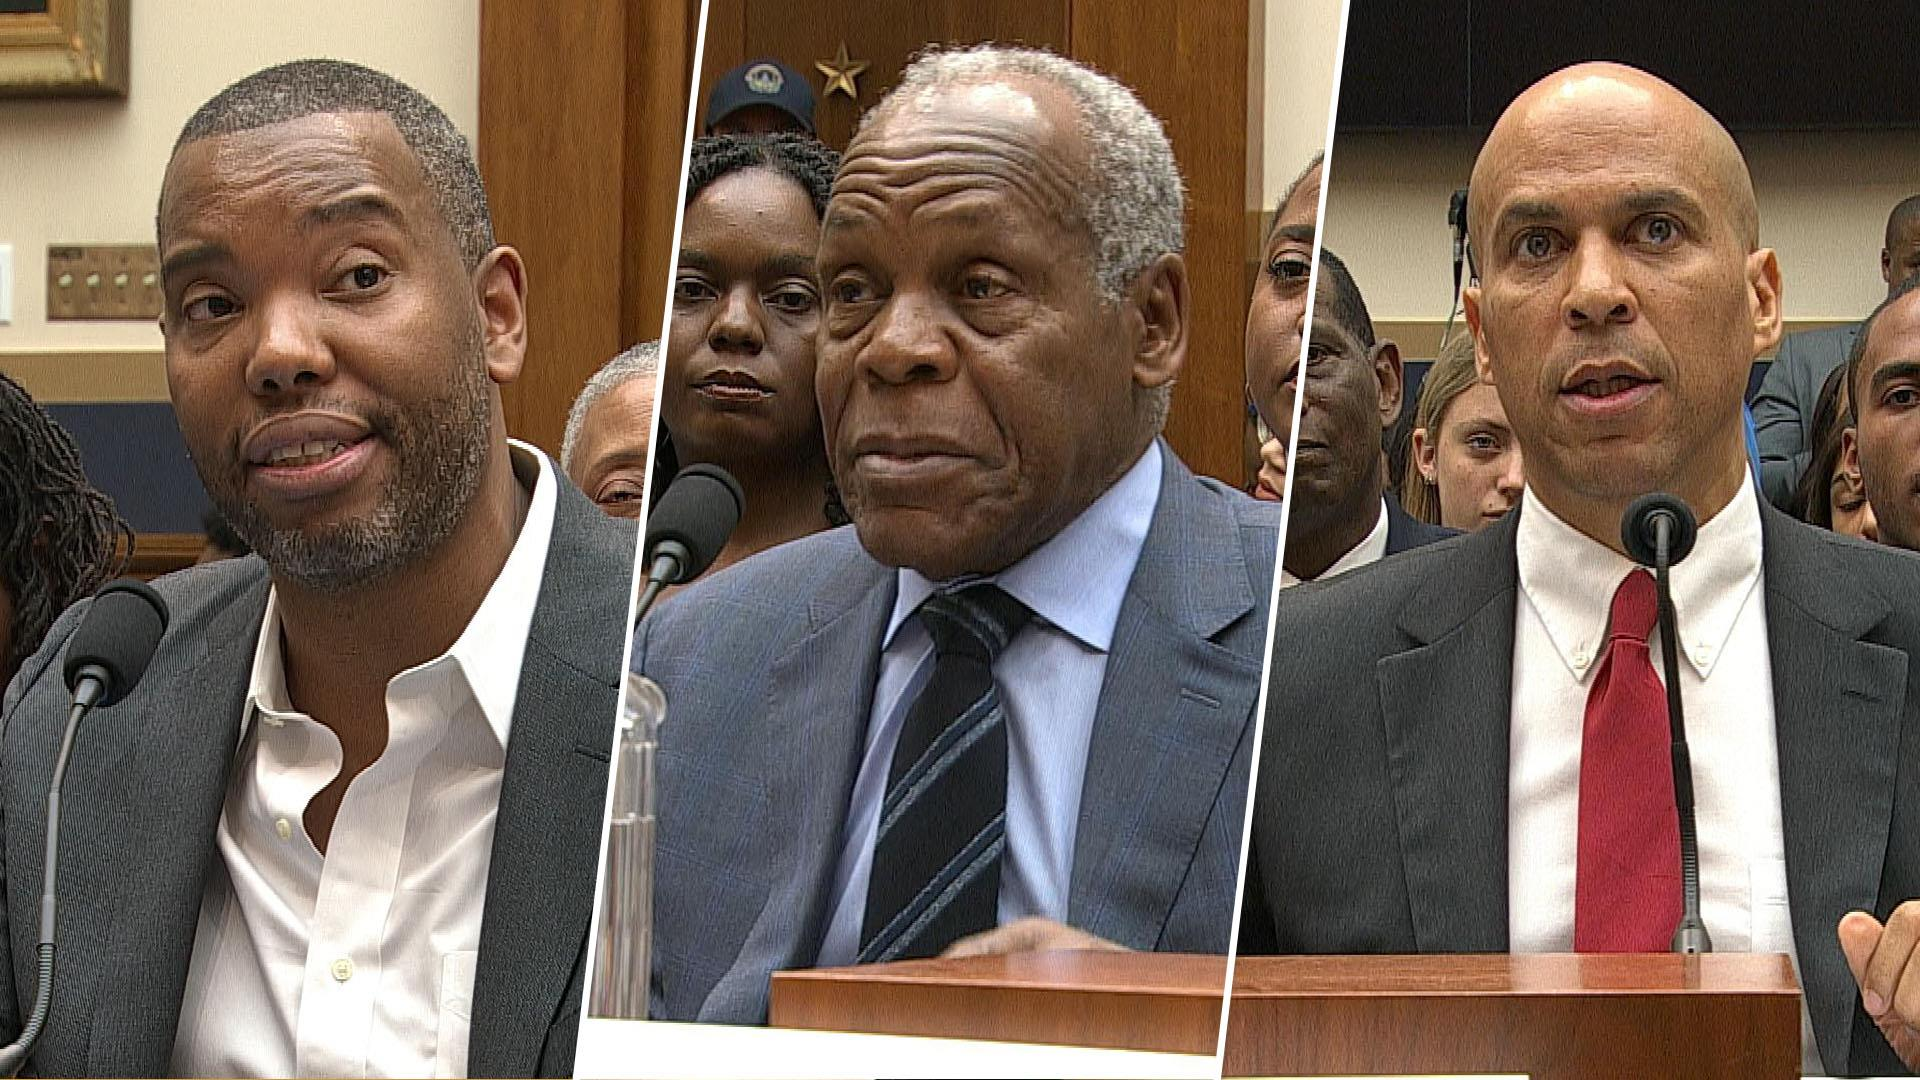 Ta-Nehisi Coates, Danny Glover and Sen. Booker speak at House hearing on reparations